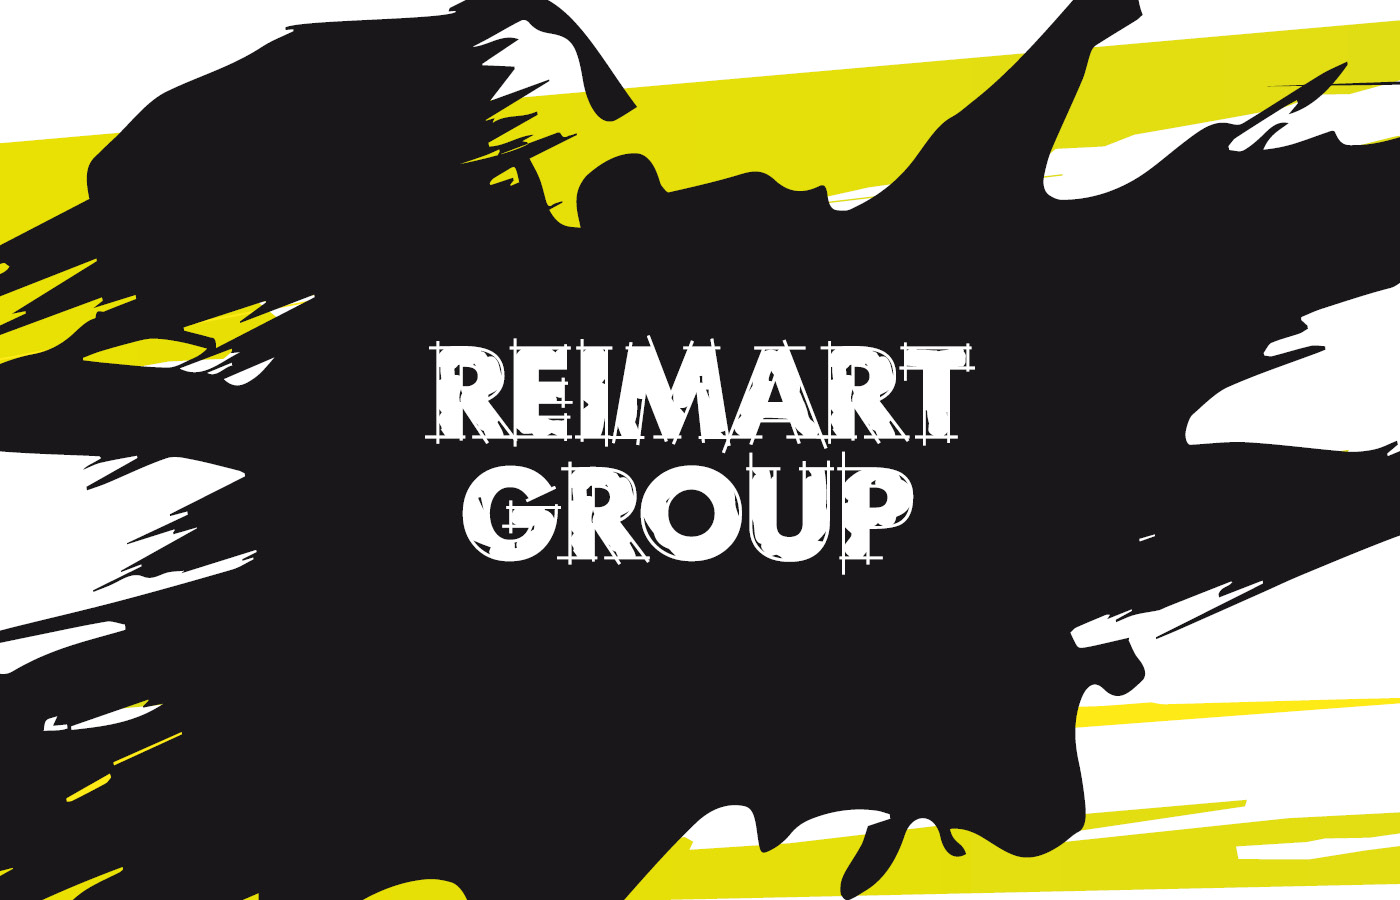 12 kp reimart group